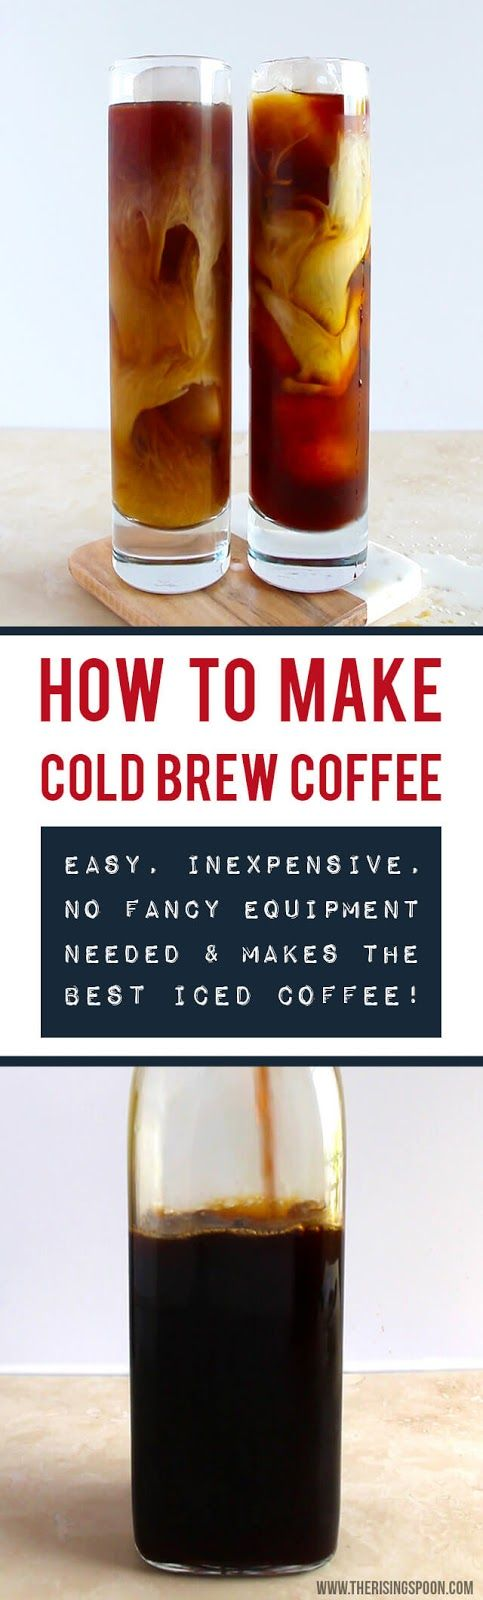 Learn how to make the best cold brew coffee at home using two simple ingredients and a few household items likely sitting in your kitchen right now. This cold infusion method produces gloriously smooth, strong coffee that's less acidic, not bitter, and tastes just like the expensive coffeehouse stuff. | DIY Food Recipes | Food Gift Ideas |